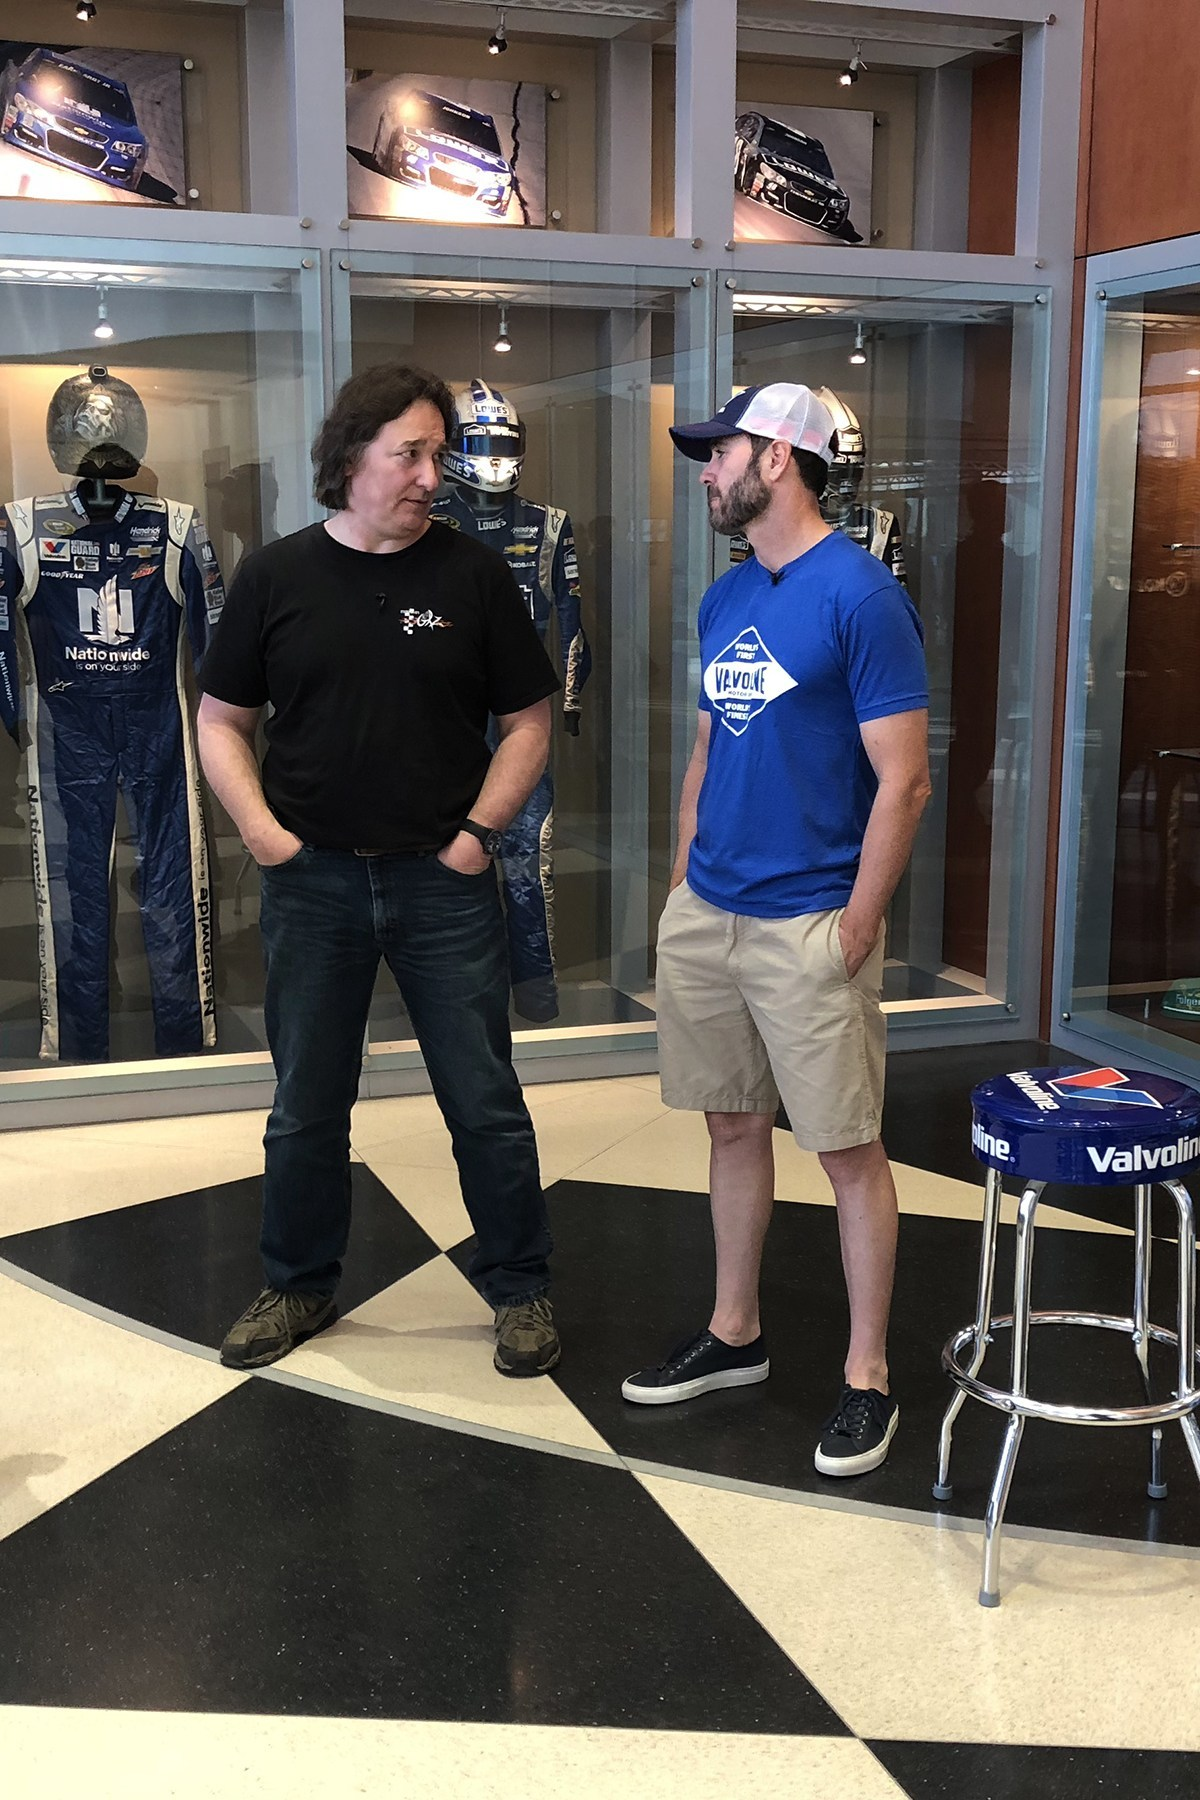 Jimmie talks LeMans, Baja 1000